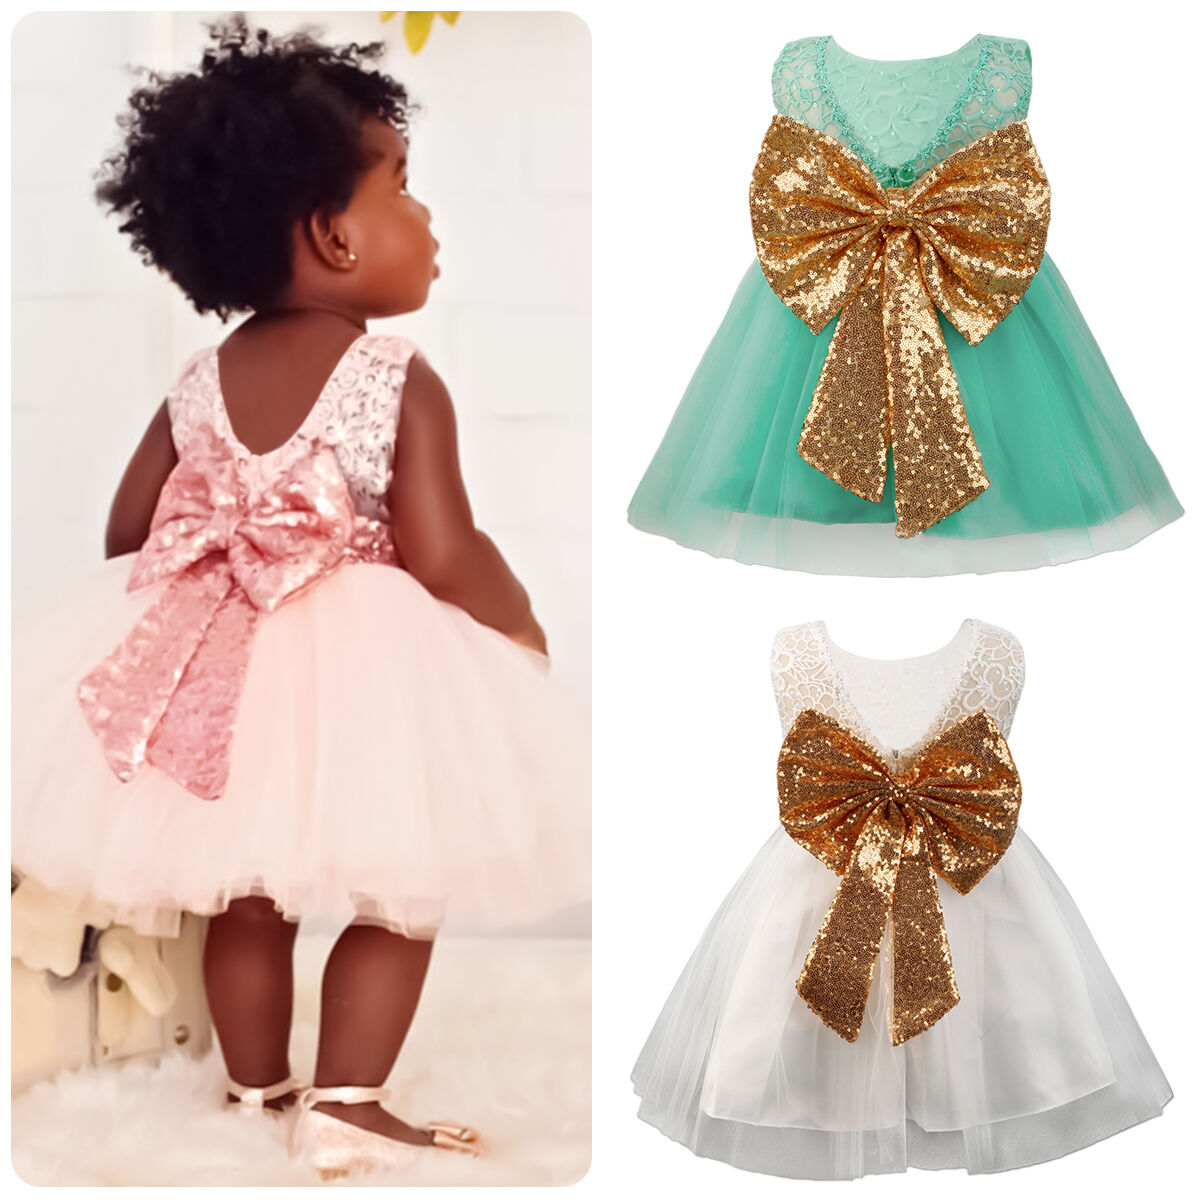 96e75f17bb89 Details about Toddler Child Baby Girl Pageant Gown Sequin Bow Tulle Lace  Party Birthday Dress